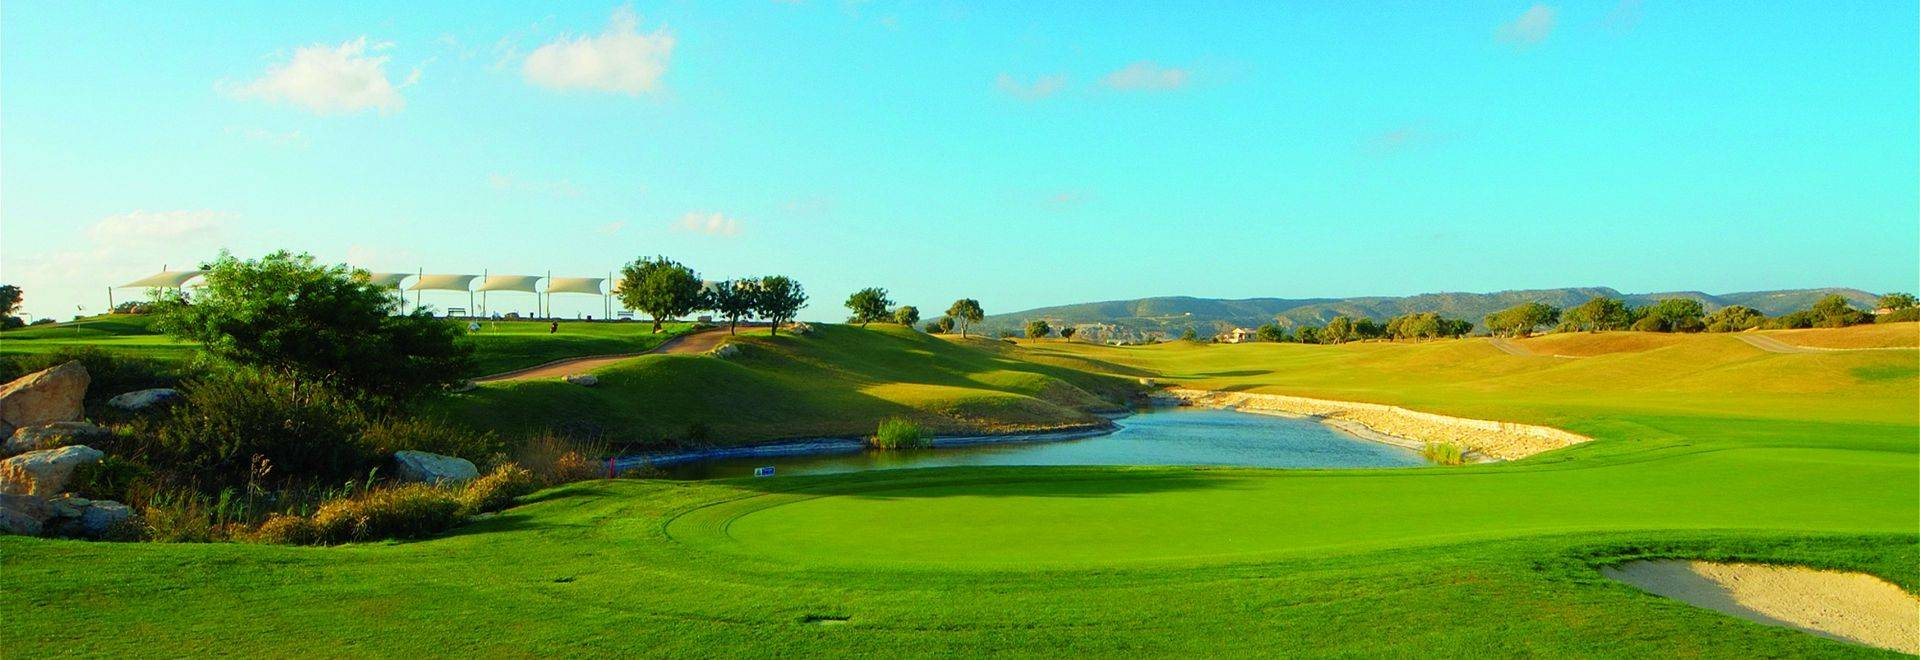 Aphrodite Hills Golf Club (3)